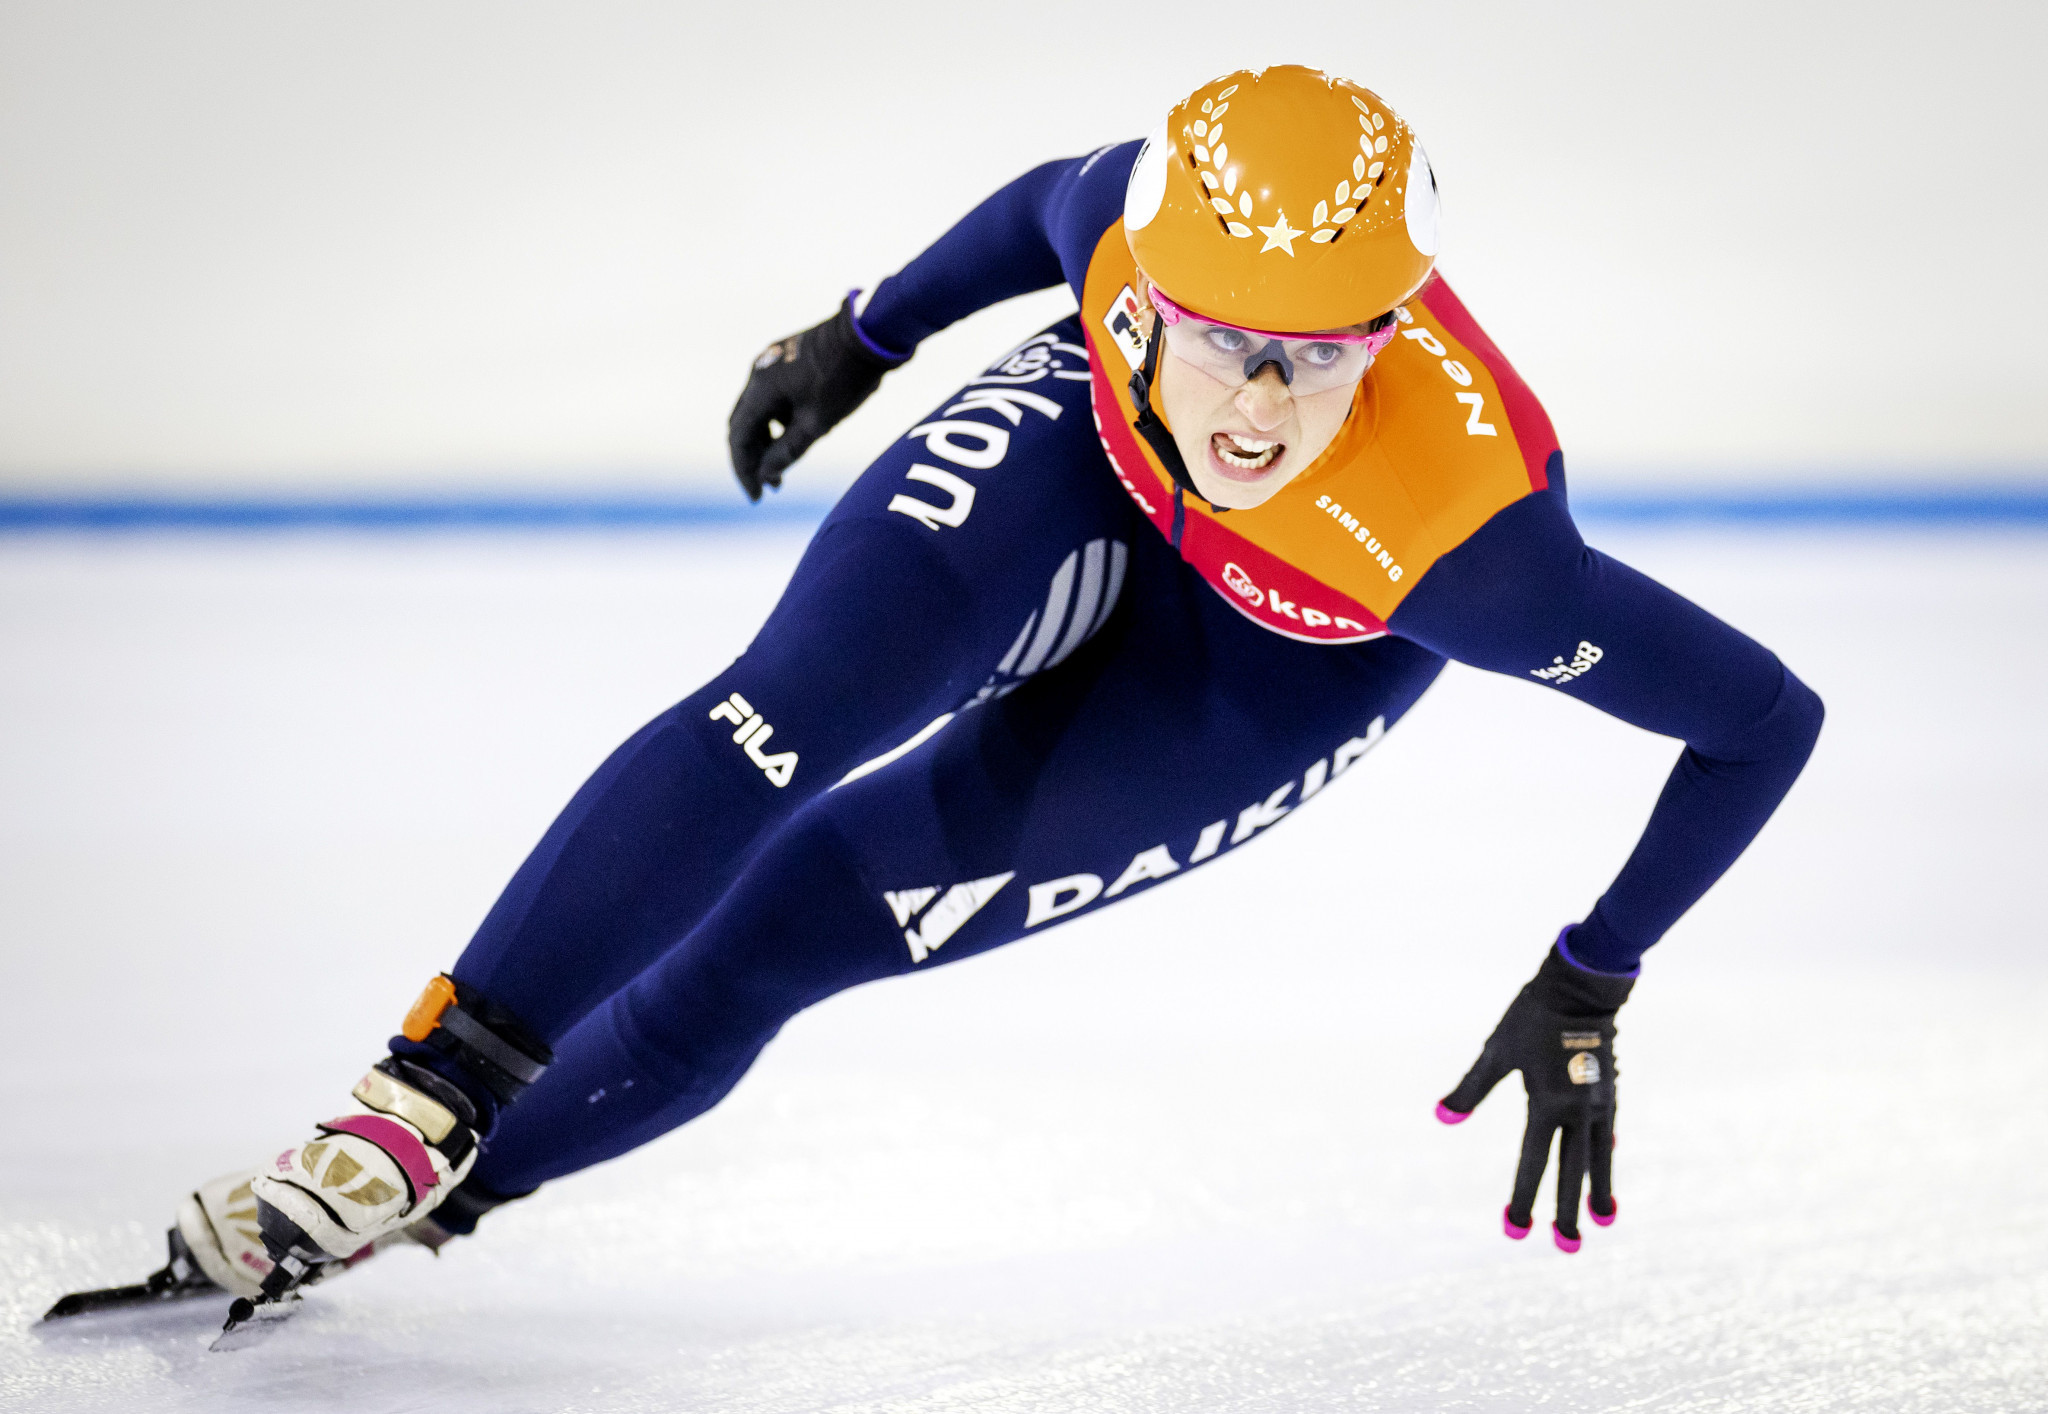 ISU European Short Track Championships underway in Gdańsk